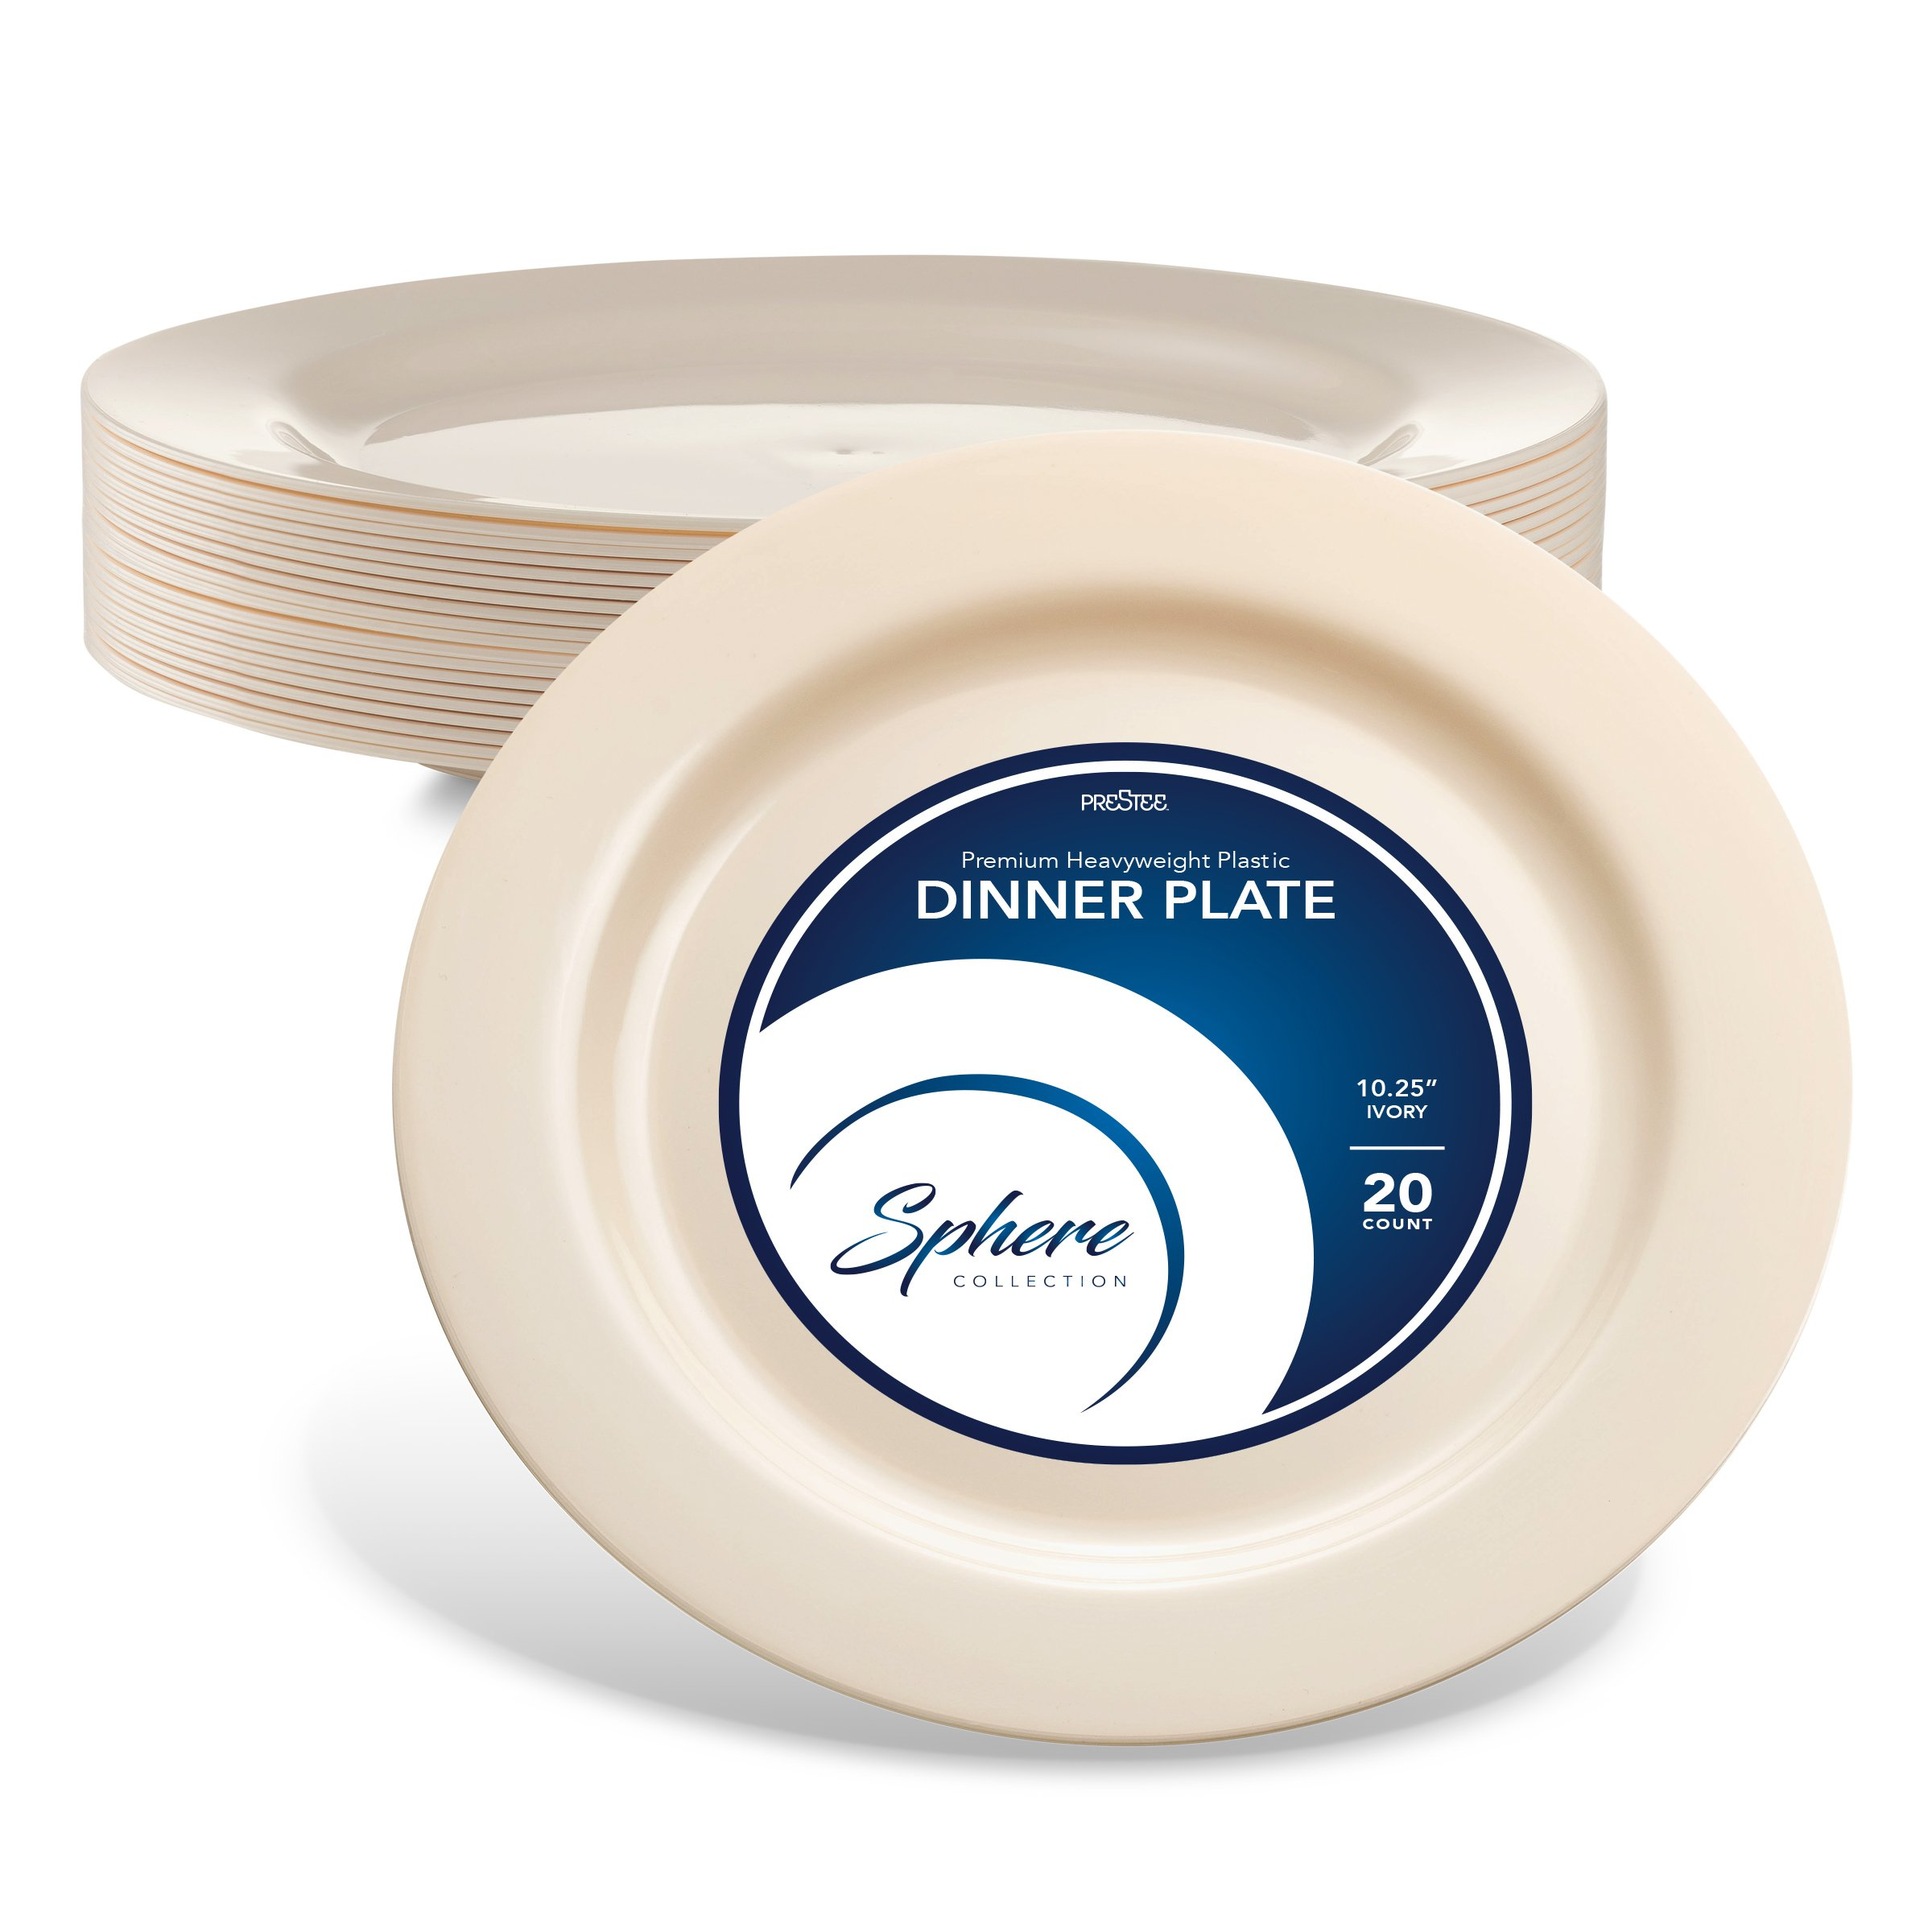 SPHERE PARTY PLATES / DINNER PLATES | 10 Inch Plastic Plates for Dinner / Wedding Etc.| Round Ivory Everyday Plate, 20 Pack | Elegant & Sturdy Heavy Duty Disposable Plates for all Holidays & Occasions